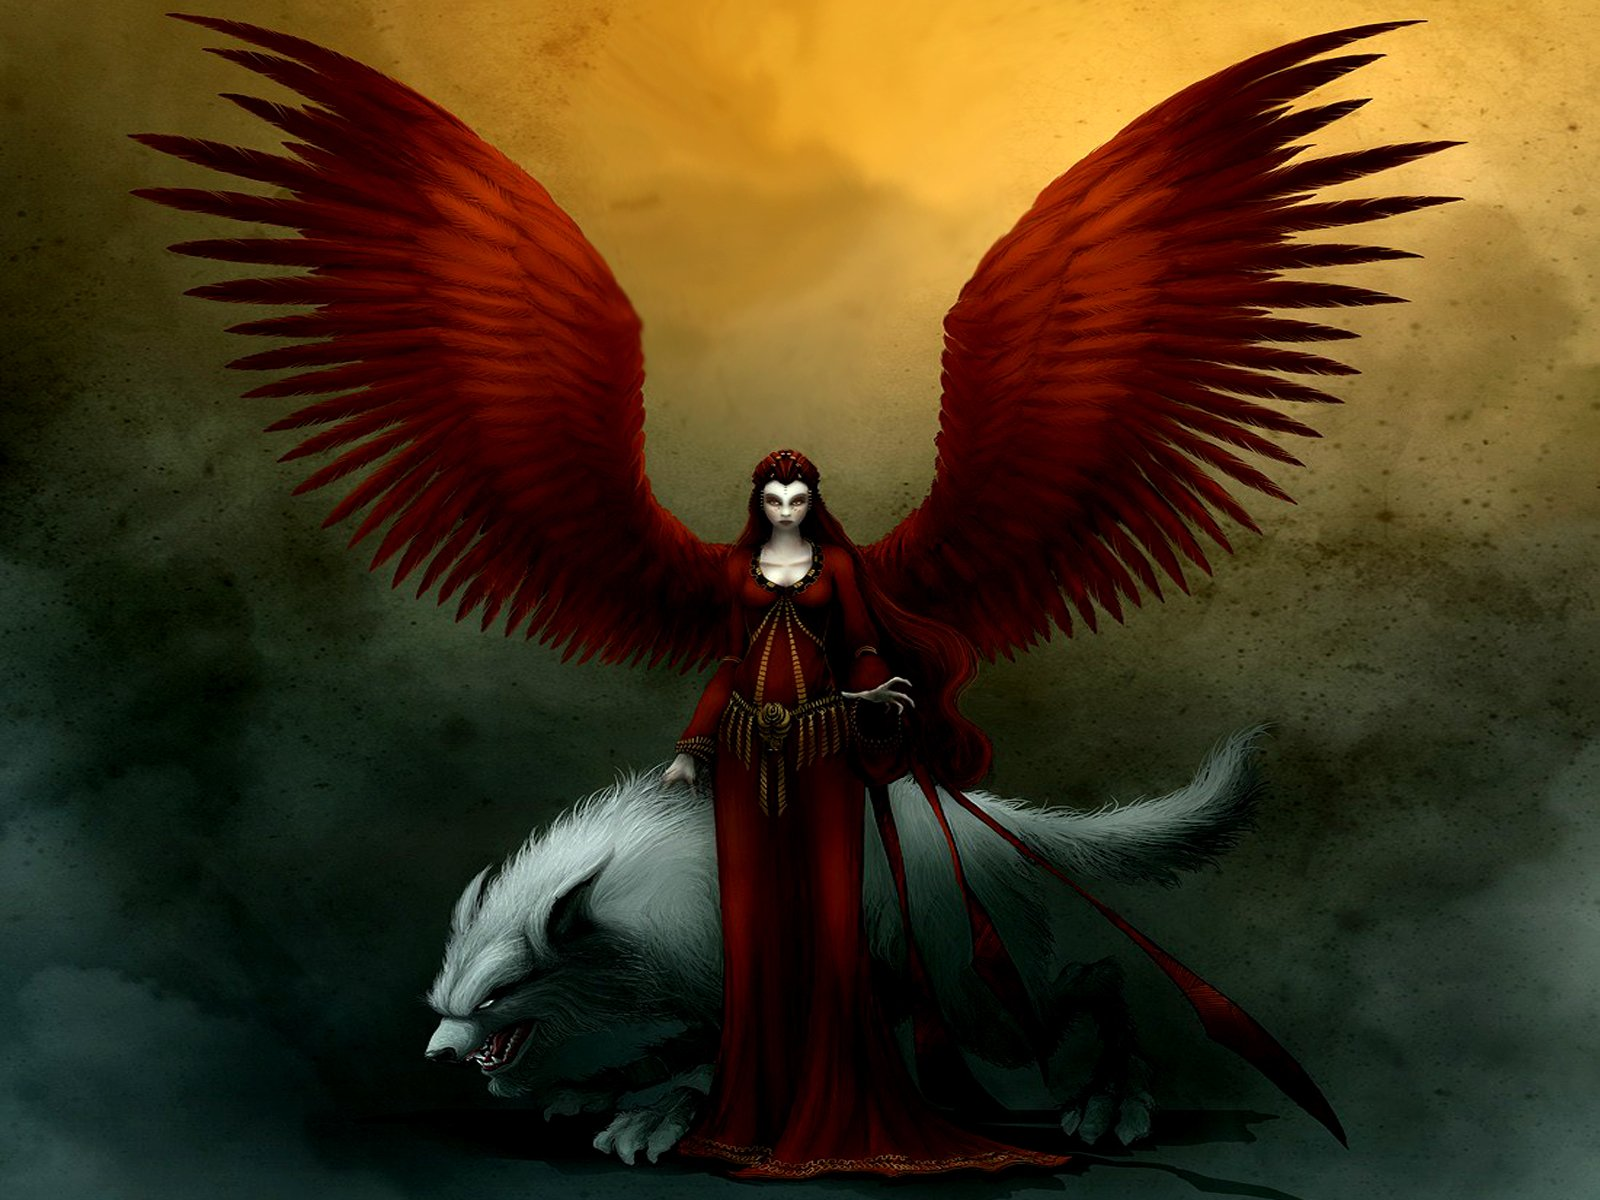 161 Angel HD Wallpapers | Backgrounds - Wallpaper Abyss